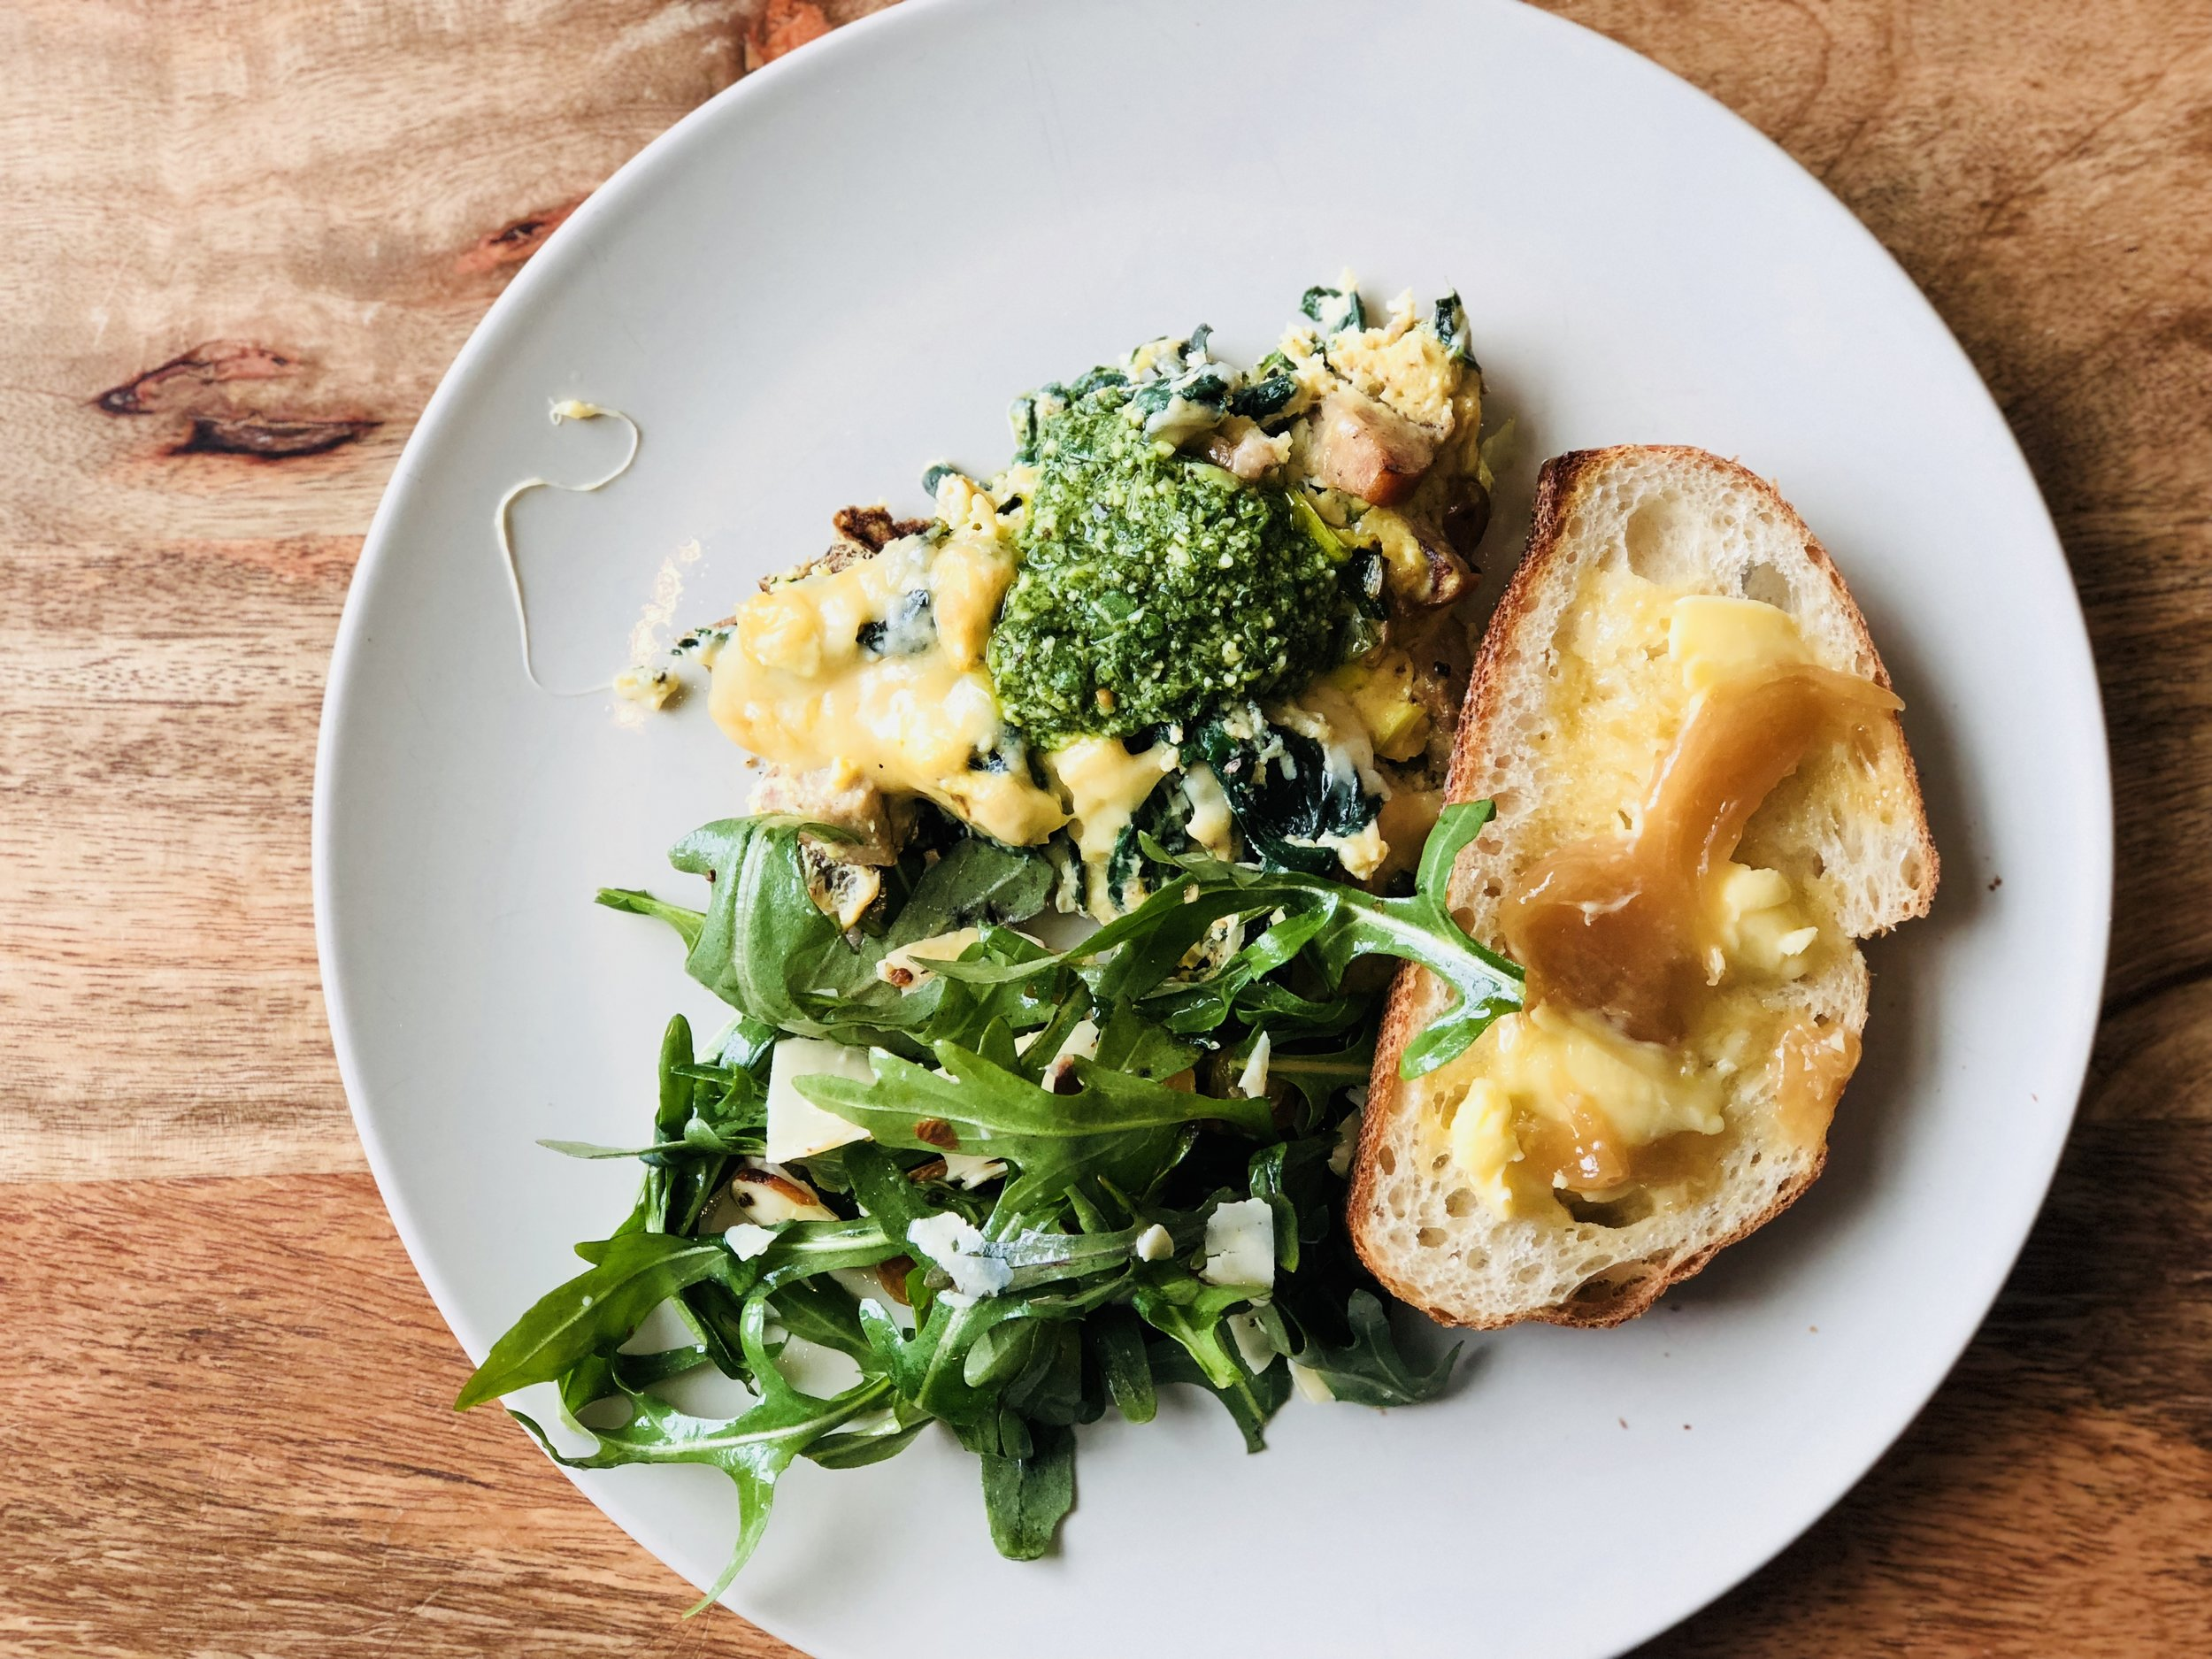 Frittata with sausage, potatoes, and pesto